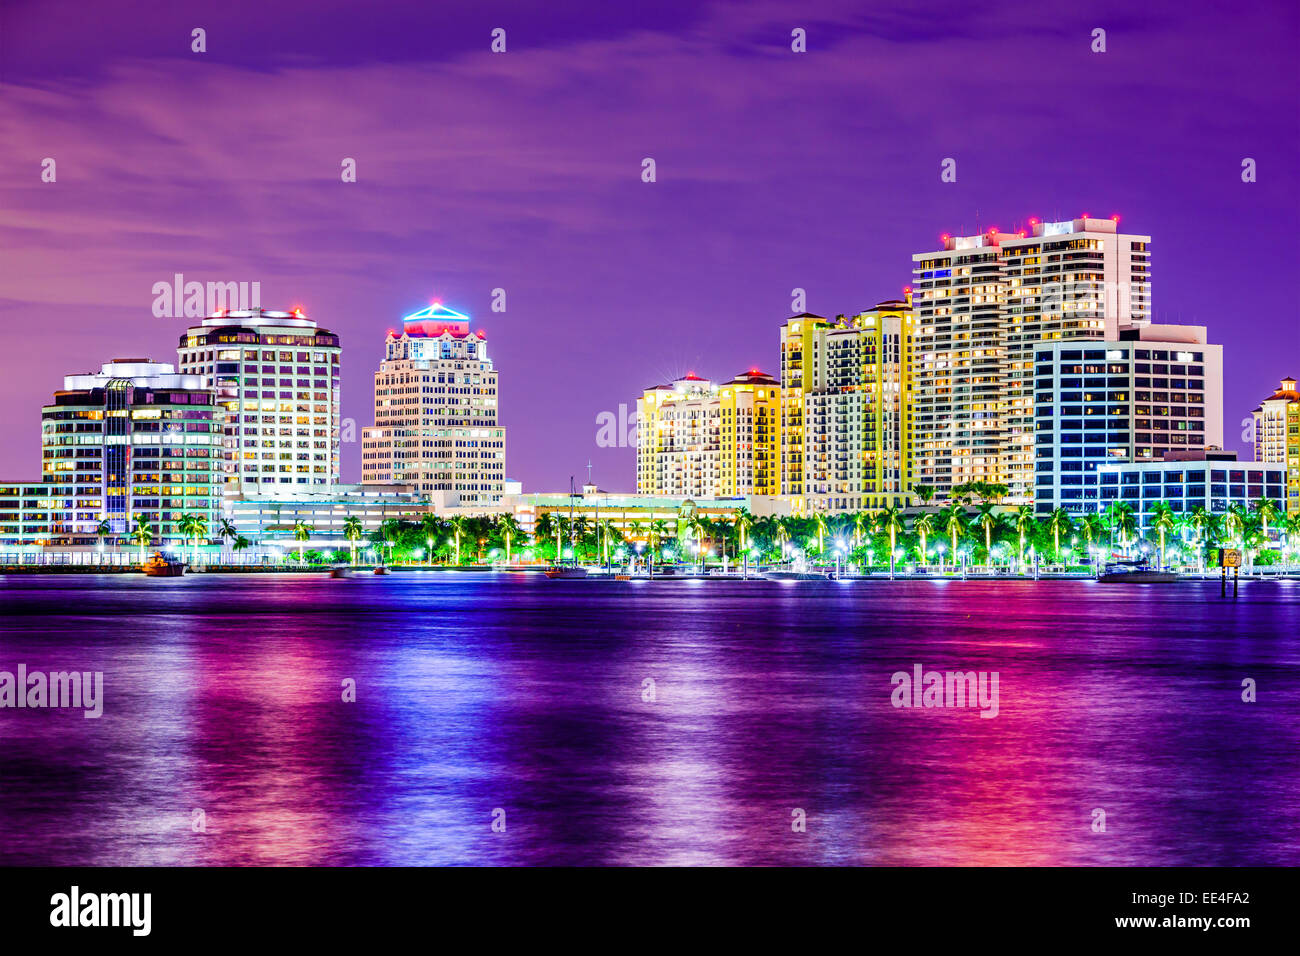 West Palm Beach, Florida, USA city skyline on the Atlantid Intracoastal Waterway. - Stock Image